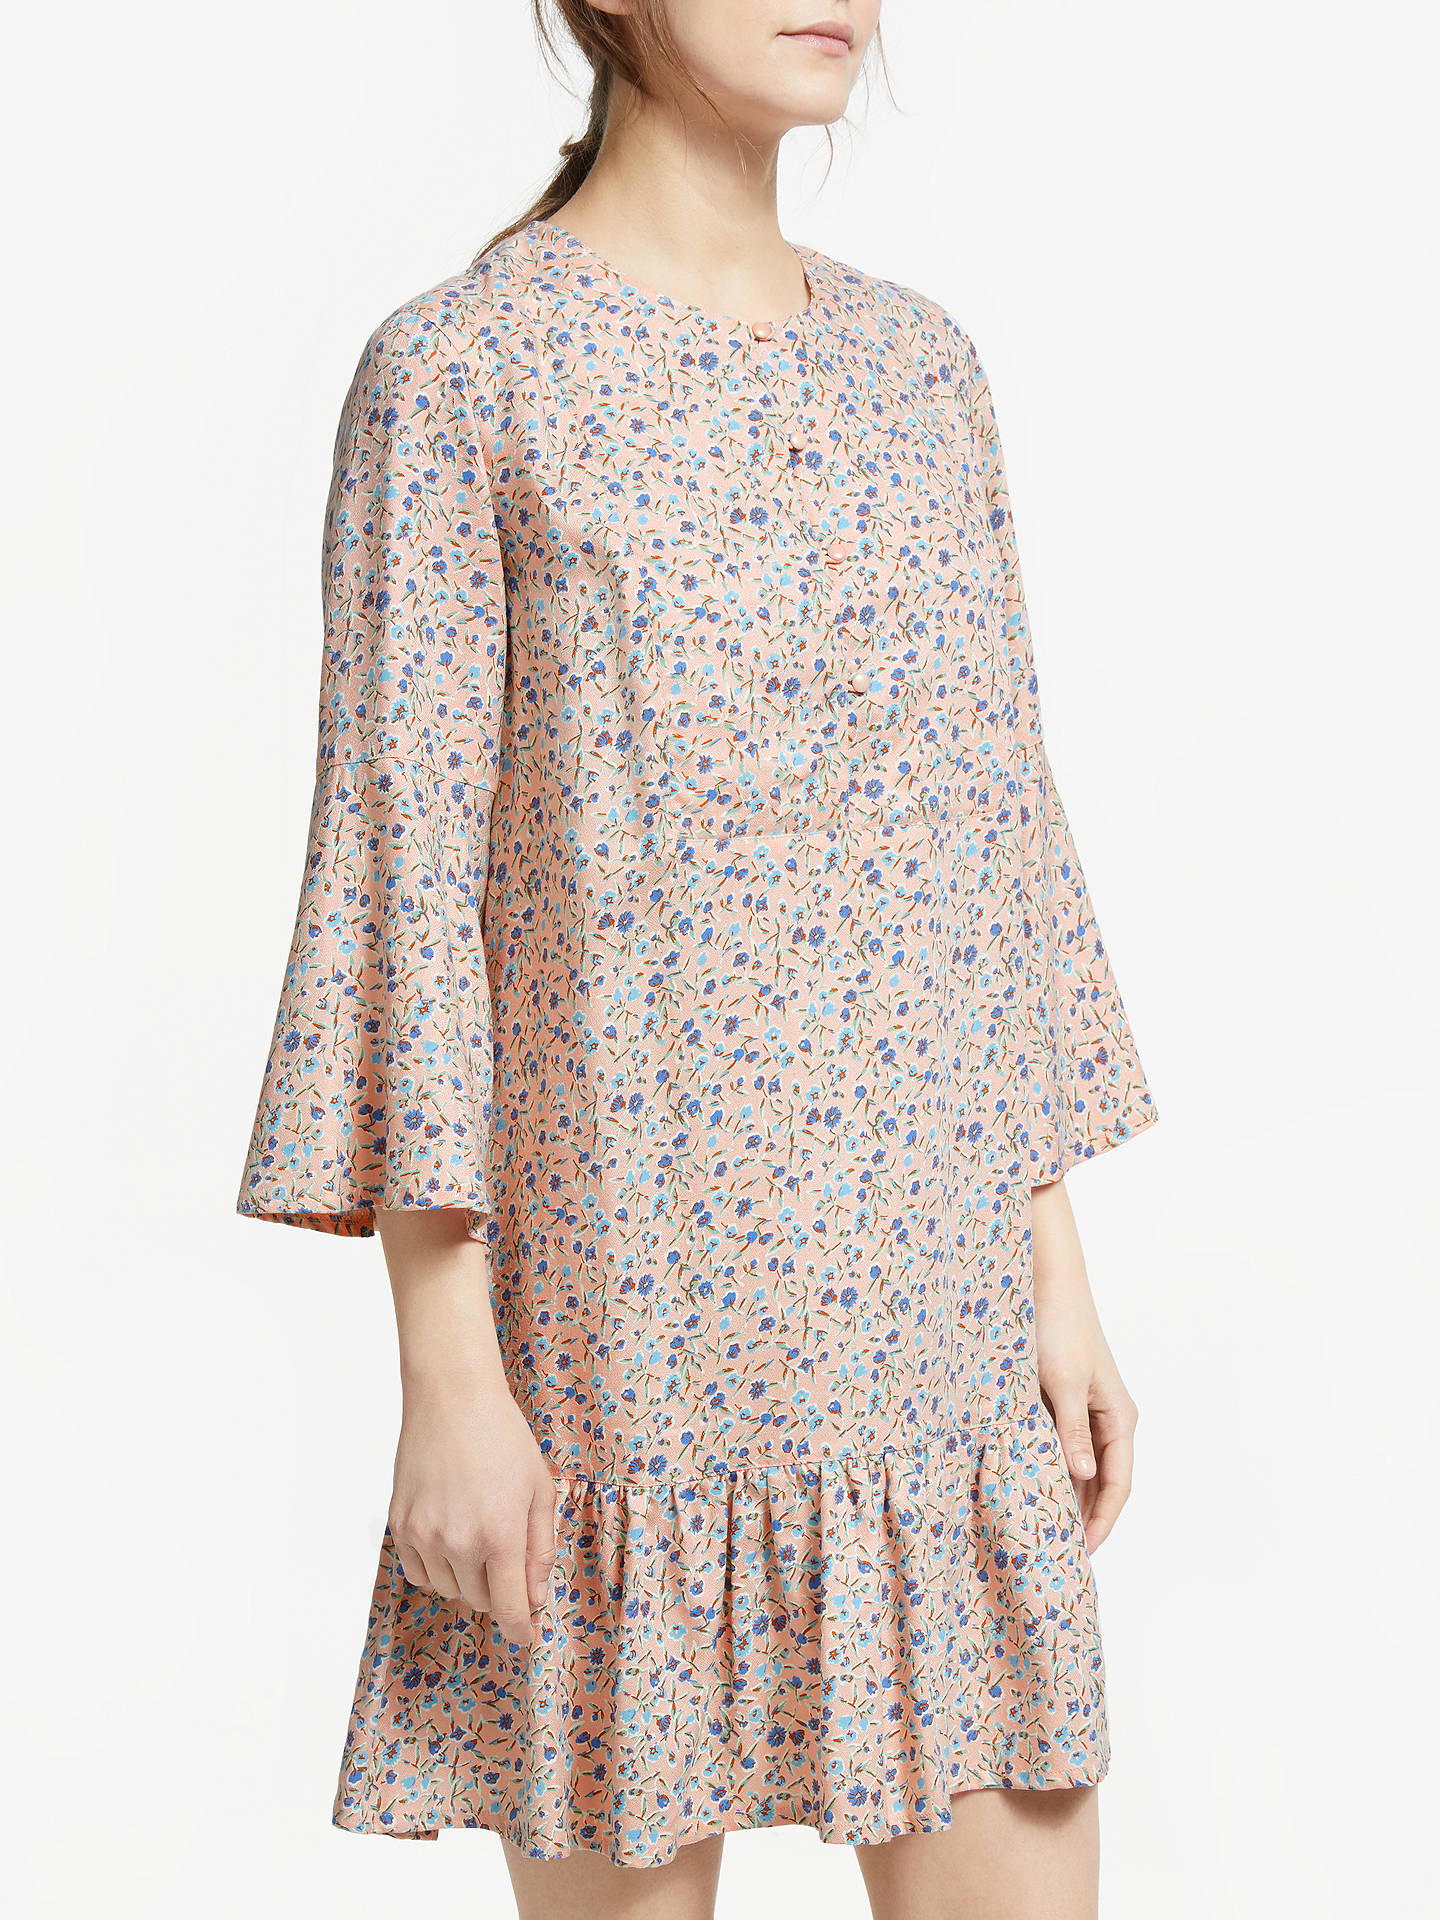 a9992b5f8ff Buy People Tree Adele Meadow Floral Dress, Pink, 8 Online at johnlewis.com  ...